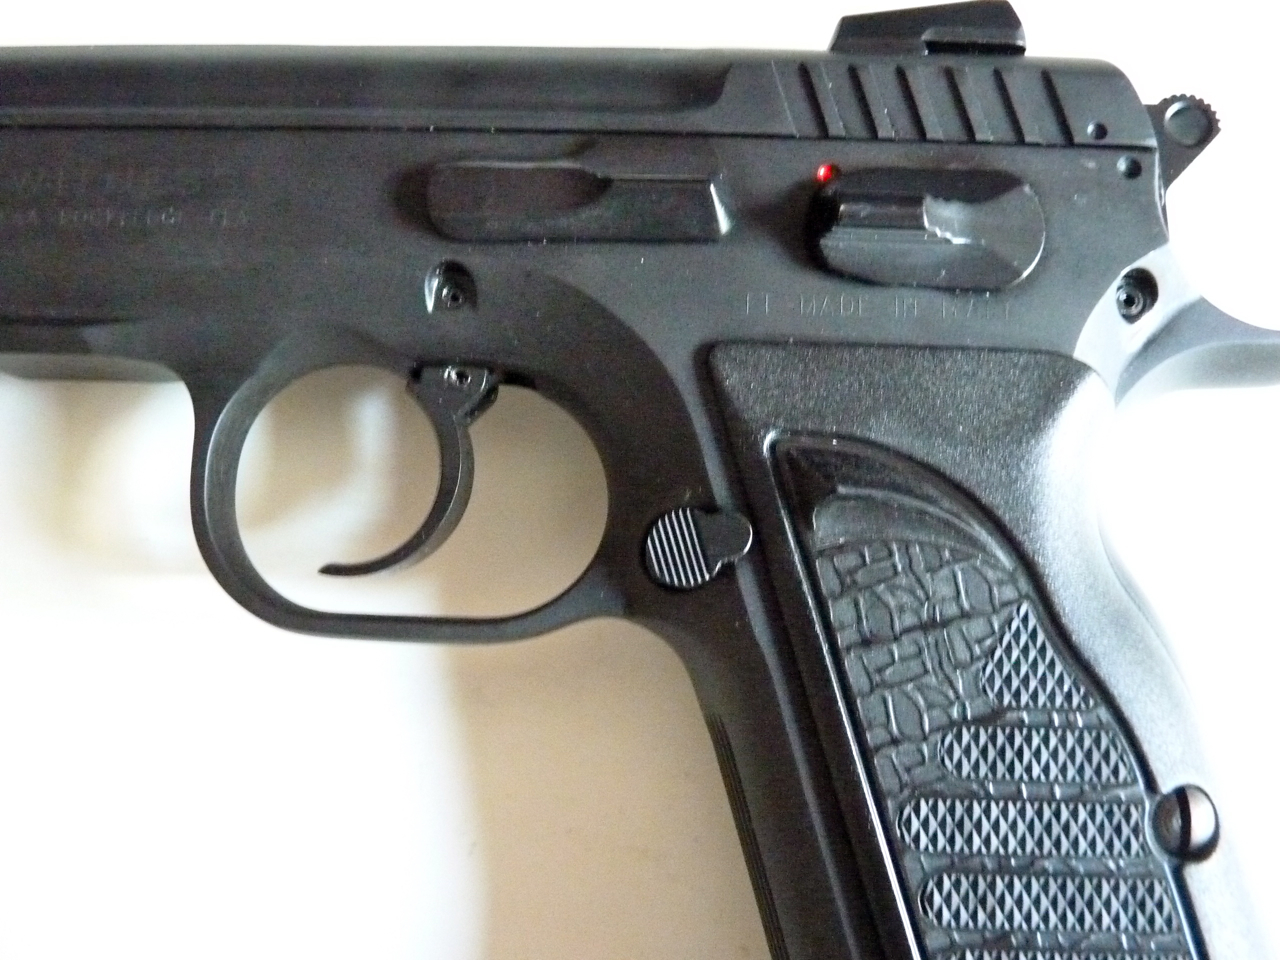 Pistol Report: Pistol Report - Review of the EAA Witness